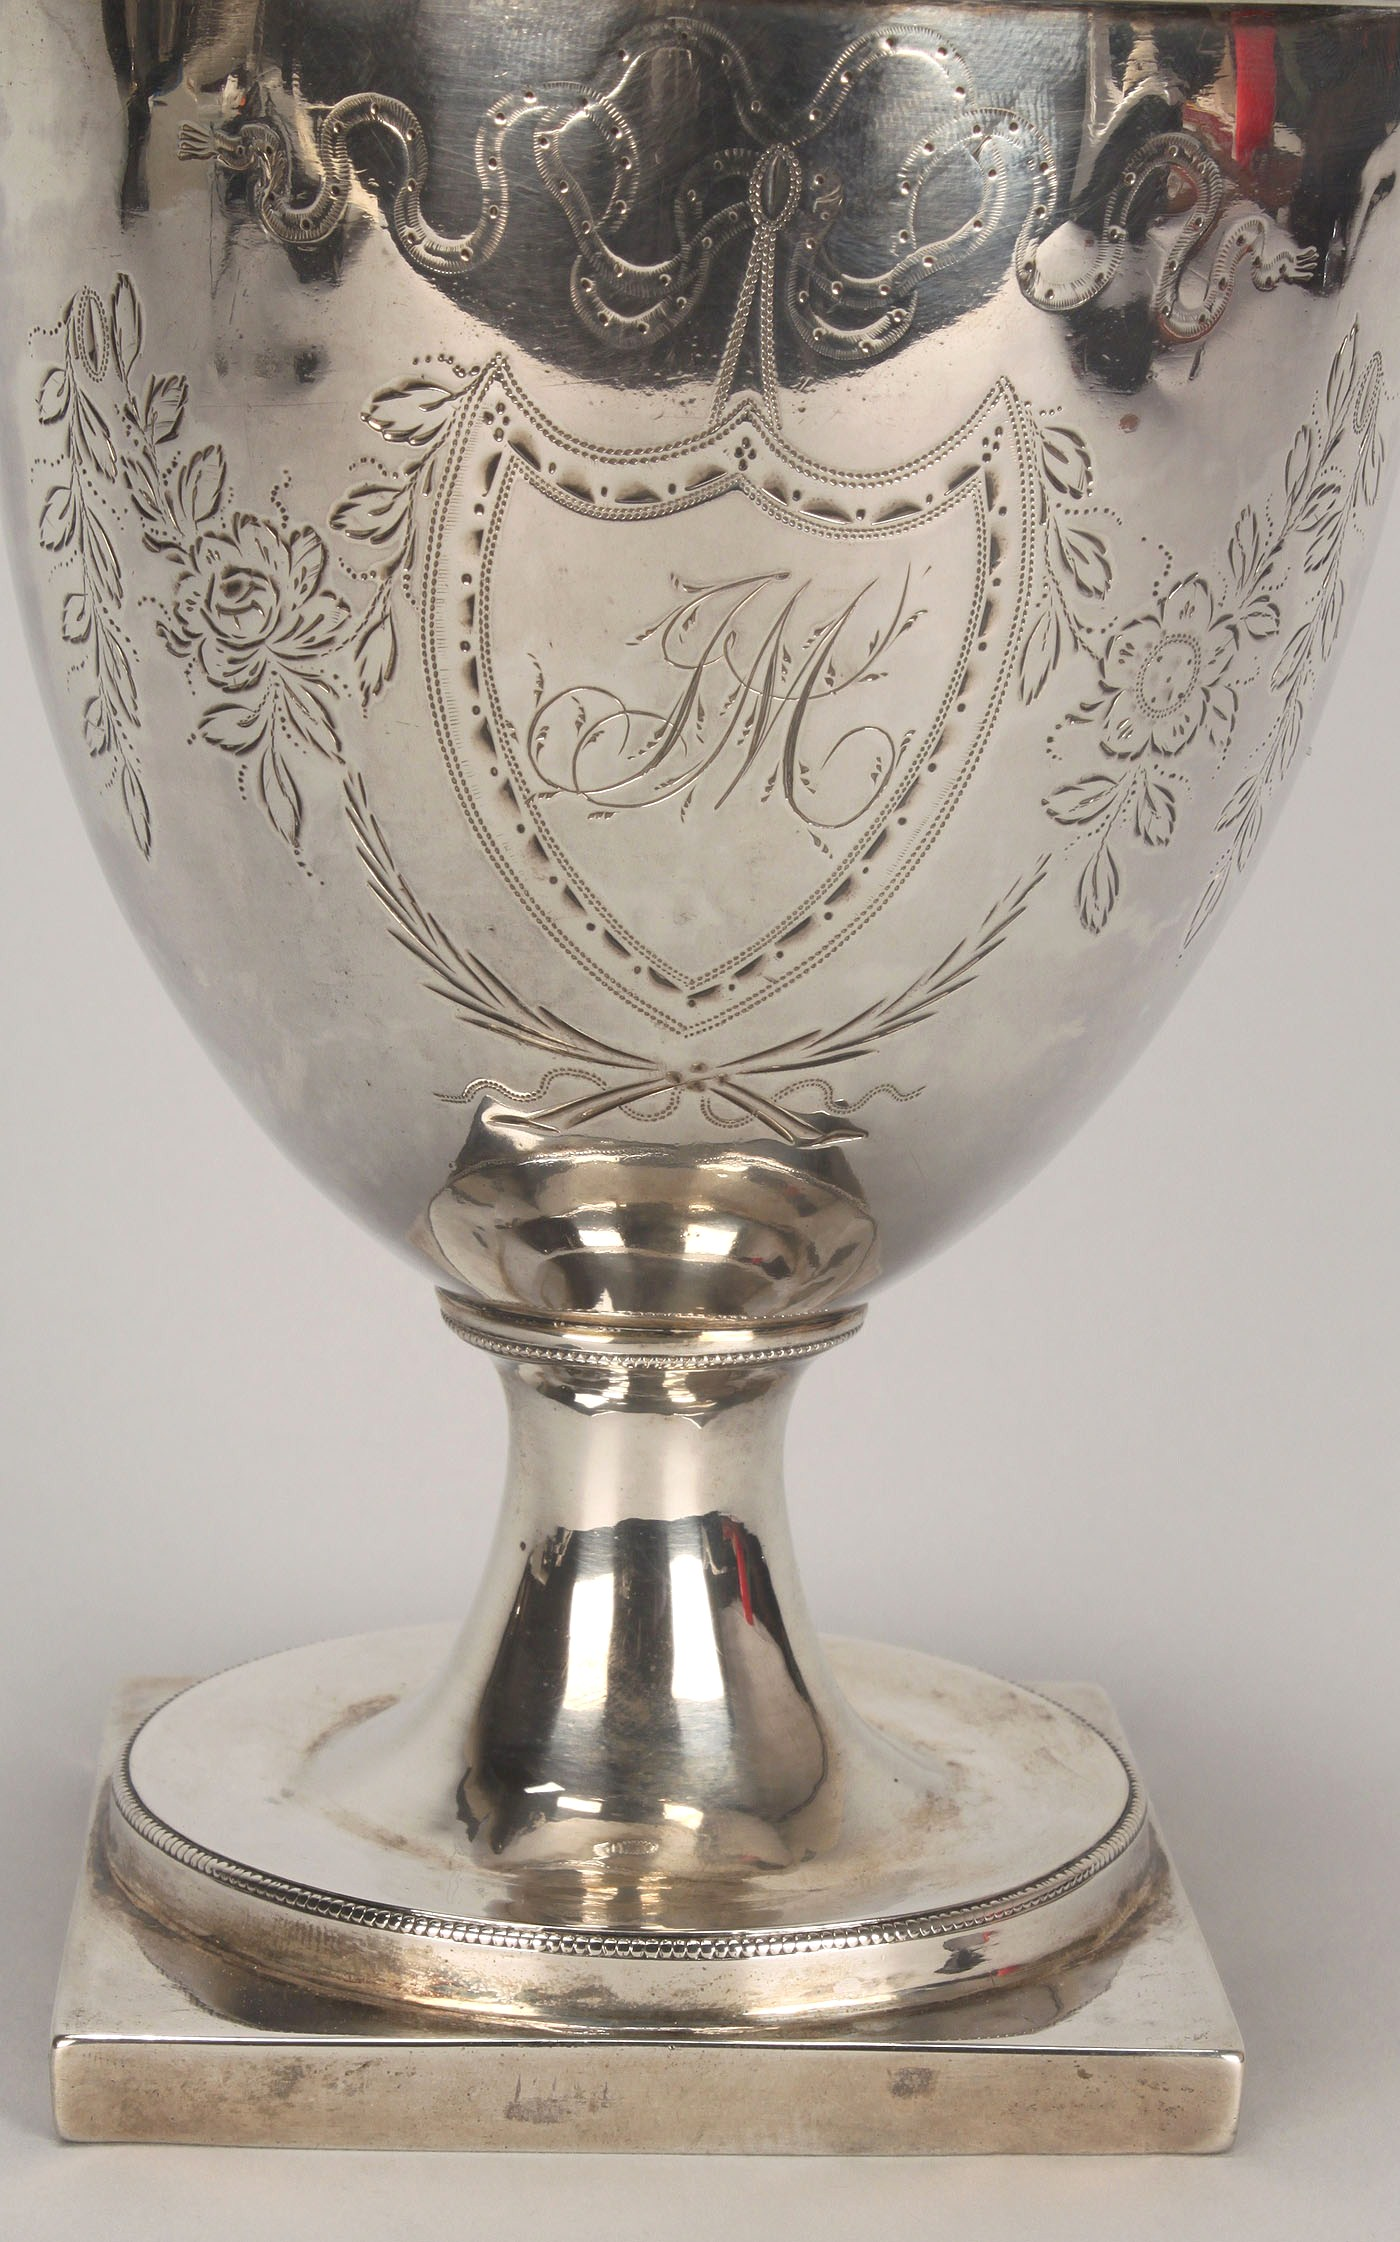 Lot 118 Federal Coin Silver Sugar Urn Engraved Decoration